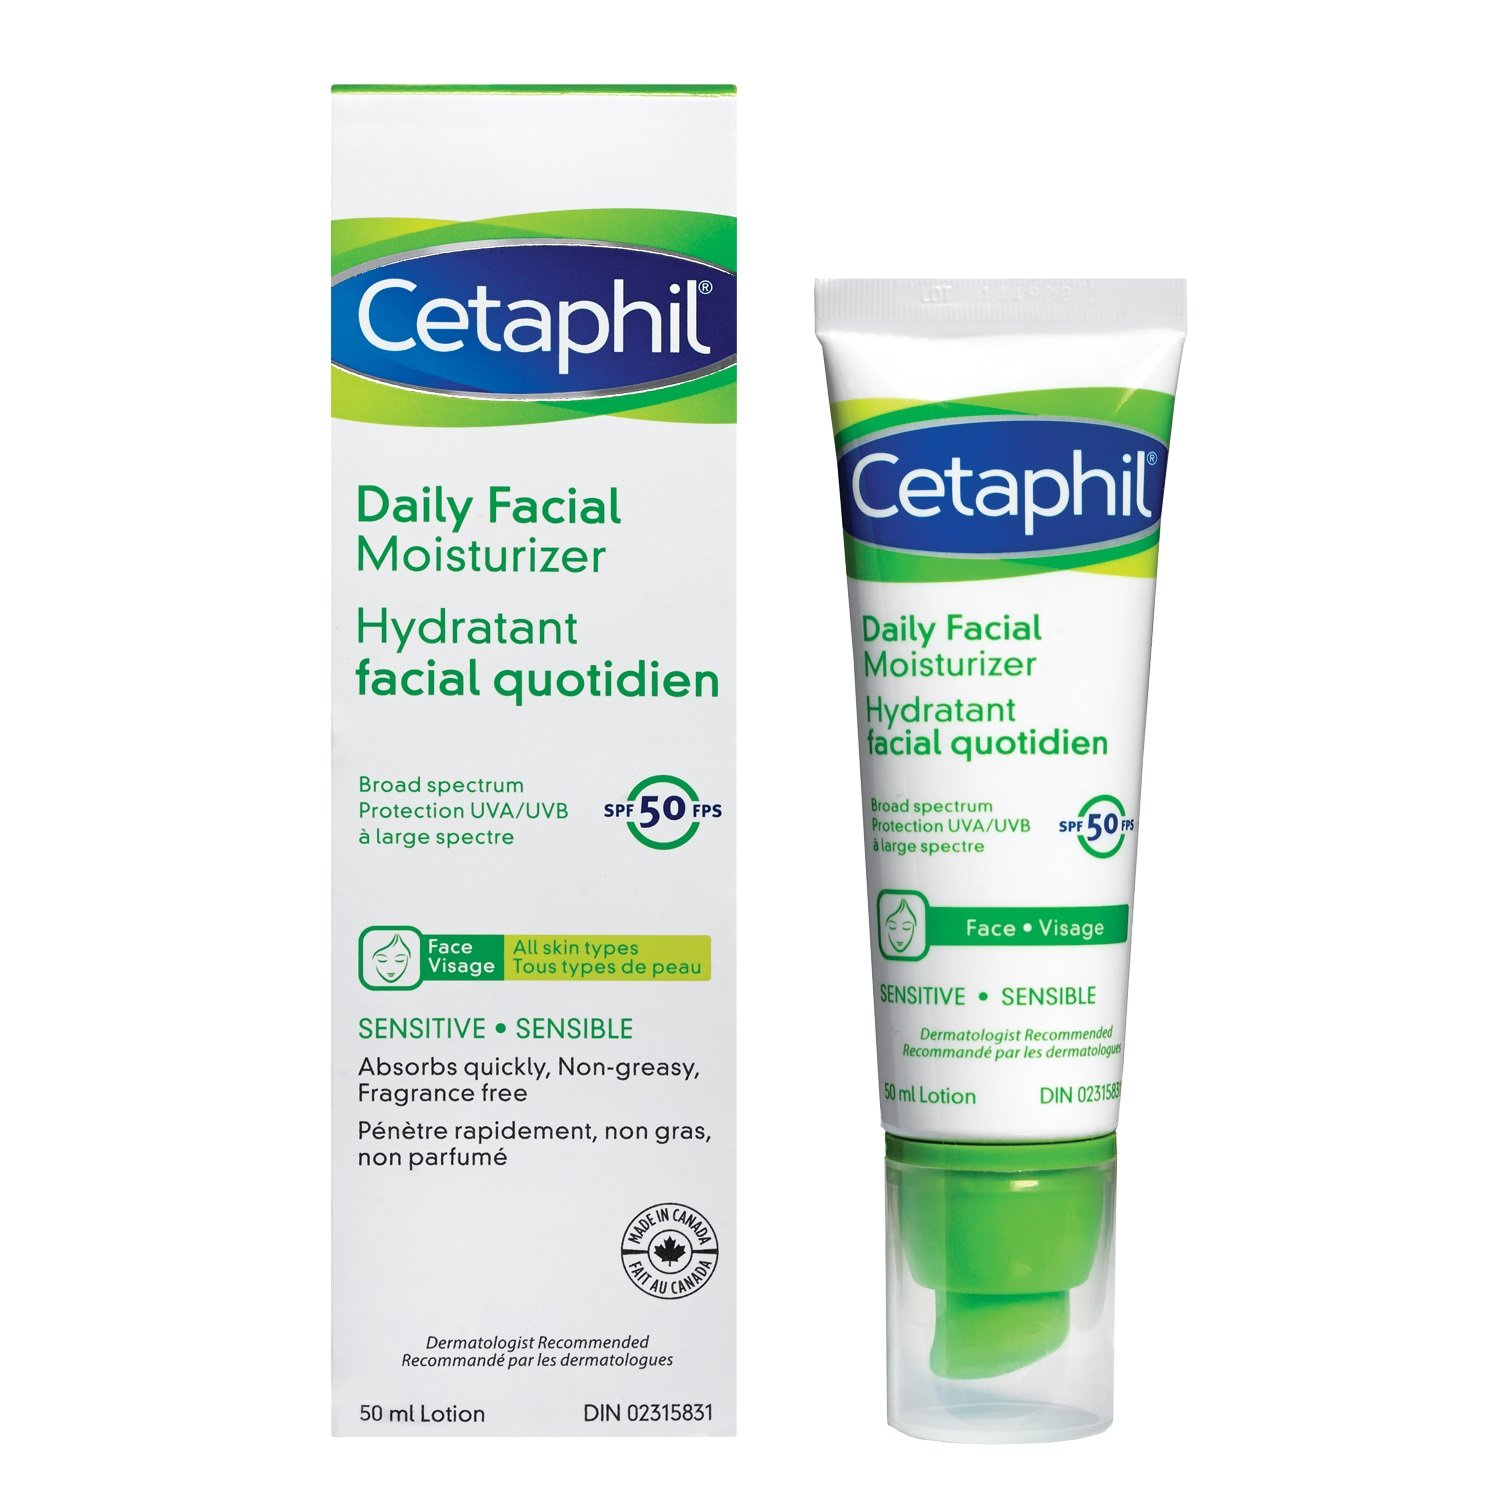 Cetaphil Gentle Skin Cleanser 500ml Beauty 500 Ml Daily Facial Moisturizer Spf 50 50ml